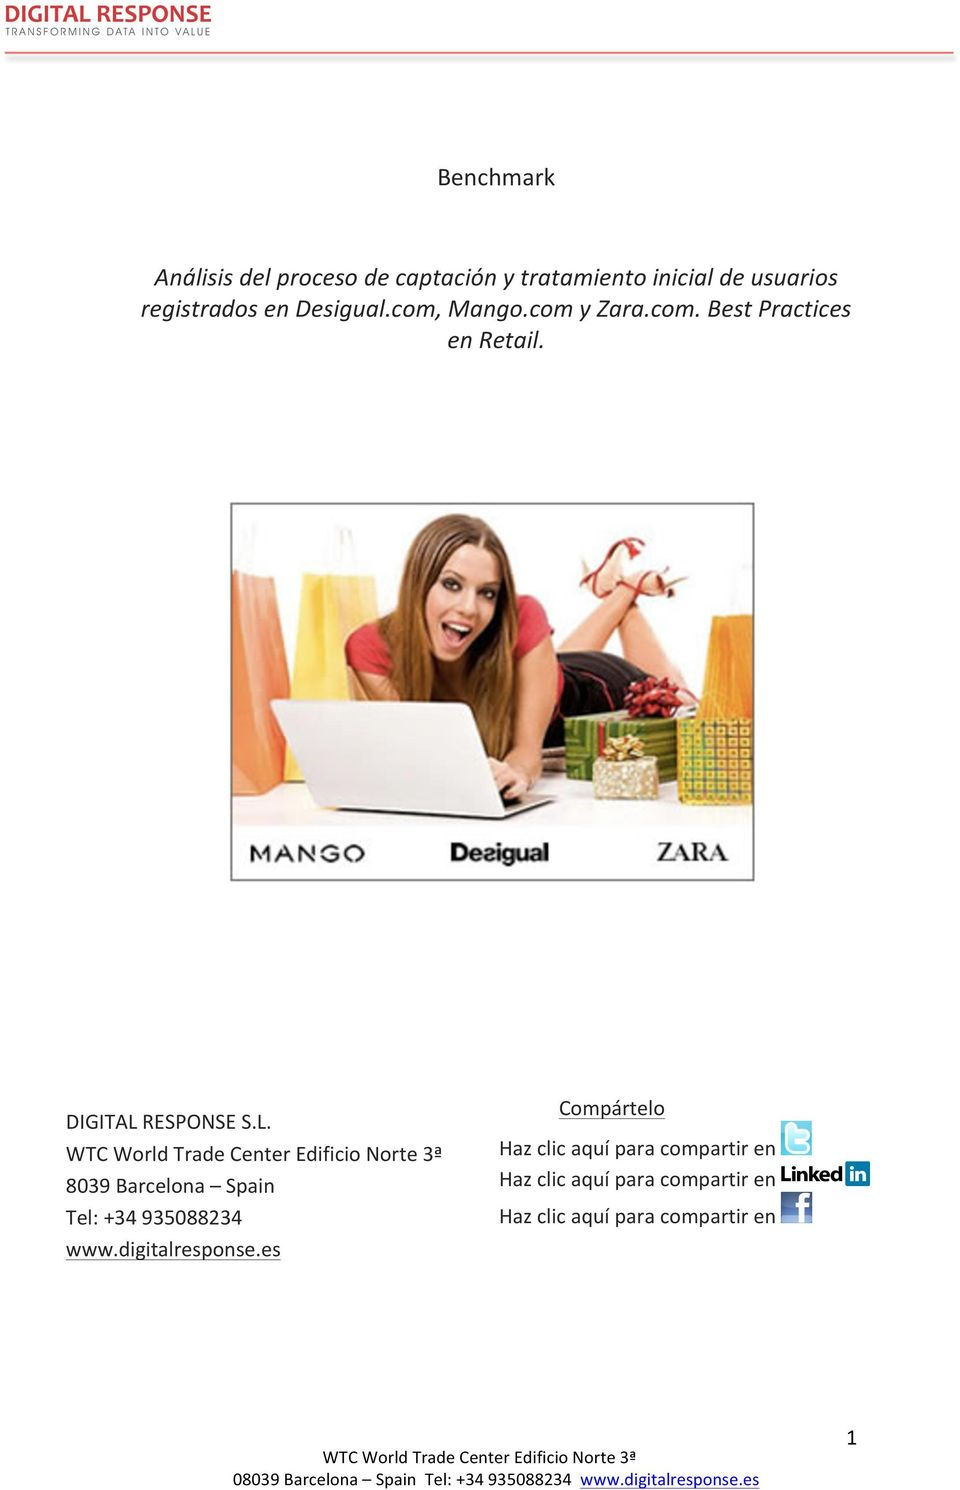 DIGITAL RESPONSE S.L. 8039 Barcelona Spain Tel: +34 935088234 www.digitalresponse.